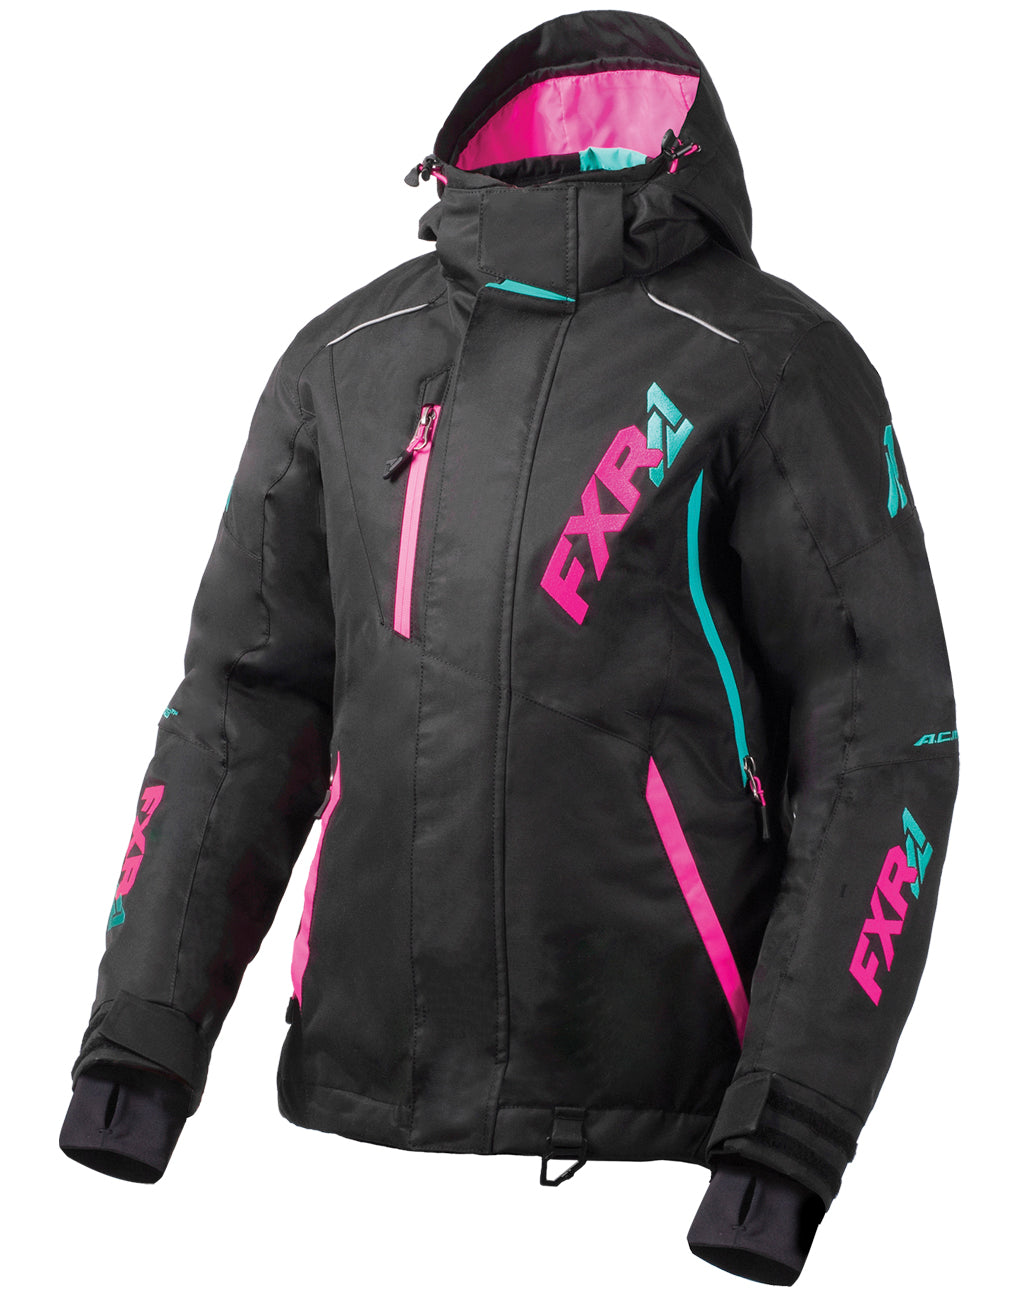 Women's FXR Vertical Pro Jacket